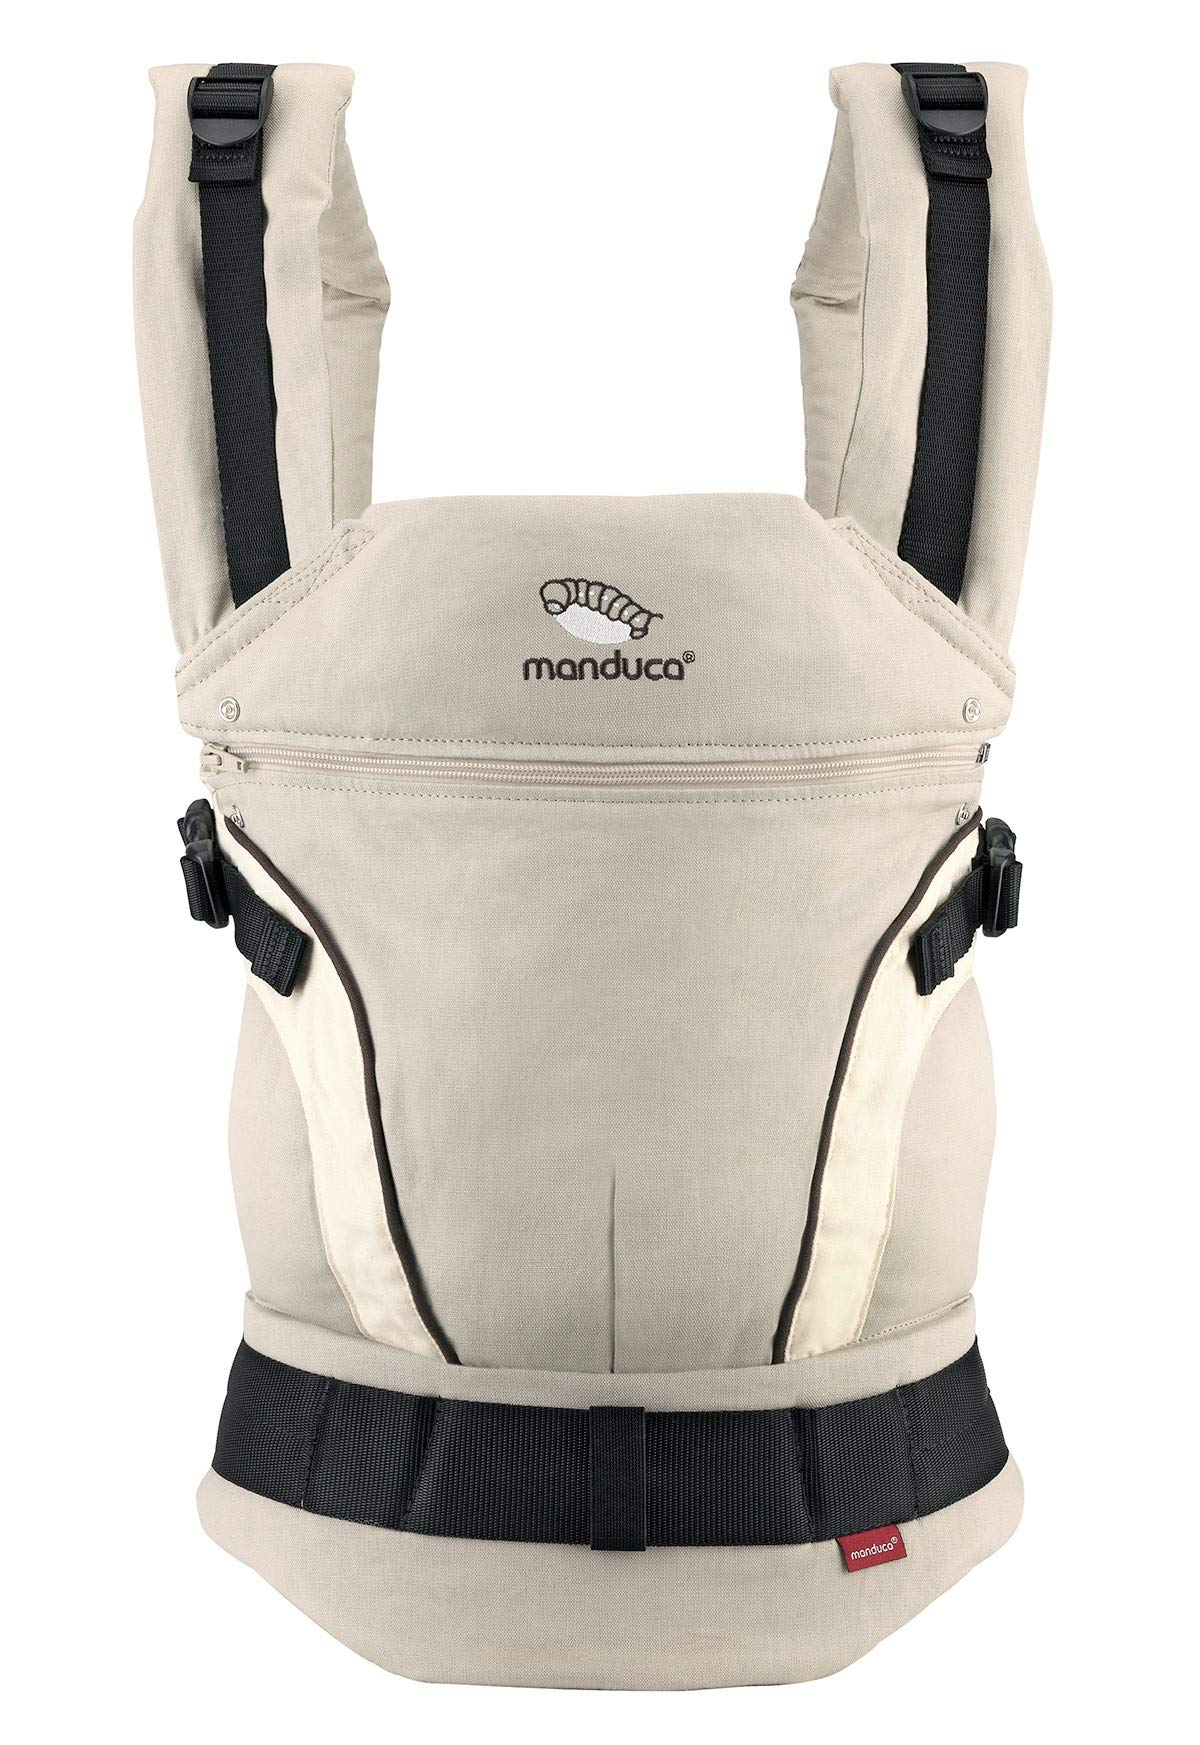 manduca First Baby Carrier > HempCotton Sand < Ergonomic Baby Carrier, Soft & Sturdy Canvas (Organic Cotton & Hemp), Front Carry, Hip Seat and Back Carry, from Newborn to Toddlers up to 20kg, Beige Manduca New features: Improved three-point-buckle (secure & easy to open); extra soft canvas made of 45% hemp and 55% organic cotton (outside), 100% organic cotton lining (inside) Already integrated in every baby carrier: infant pouch (newborn insert), stowable headrest & sun protection for your baby, patented back extension (grows with your child); Optional accessories for newborns: Size-It (seat reducer) and Zip-In Ellipse Ergonomic design for men & women: Soft padded shoulder straps (multiple adjustable) & anatomically shaped stable hipbelt (fits hips from 64cm to 140cm) ensure balanced weight distribution. No waist-belt extension needed 1